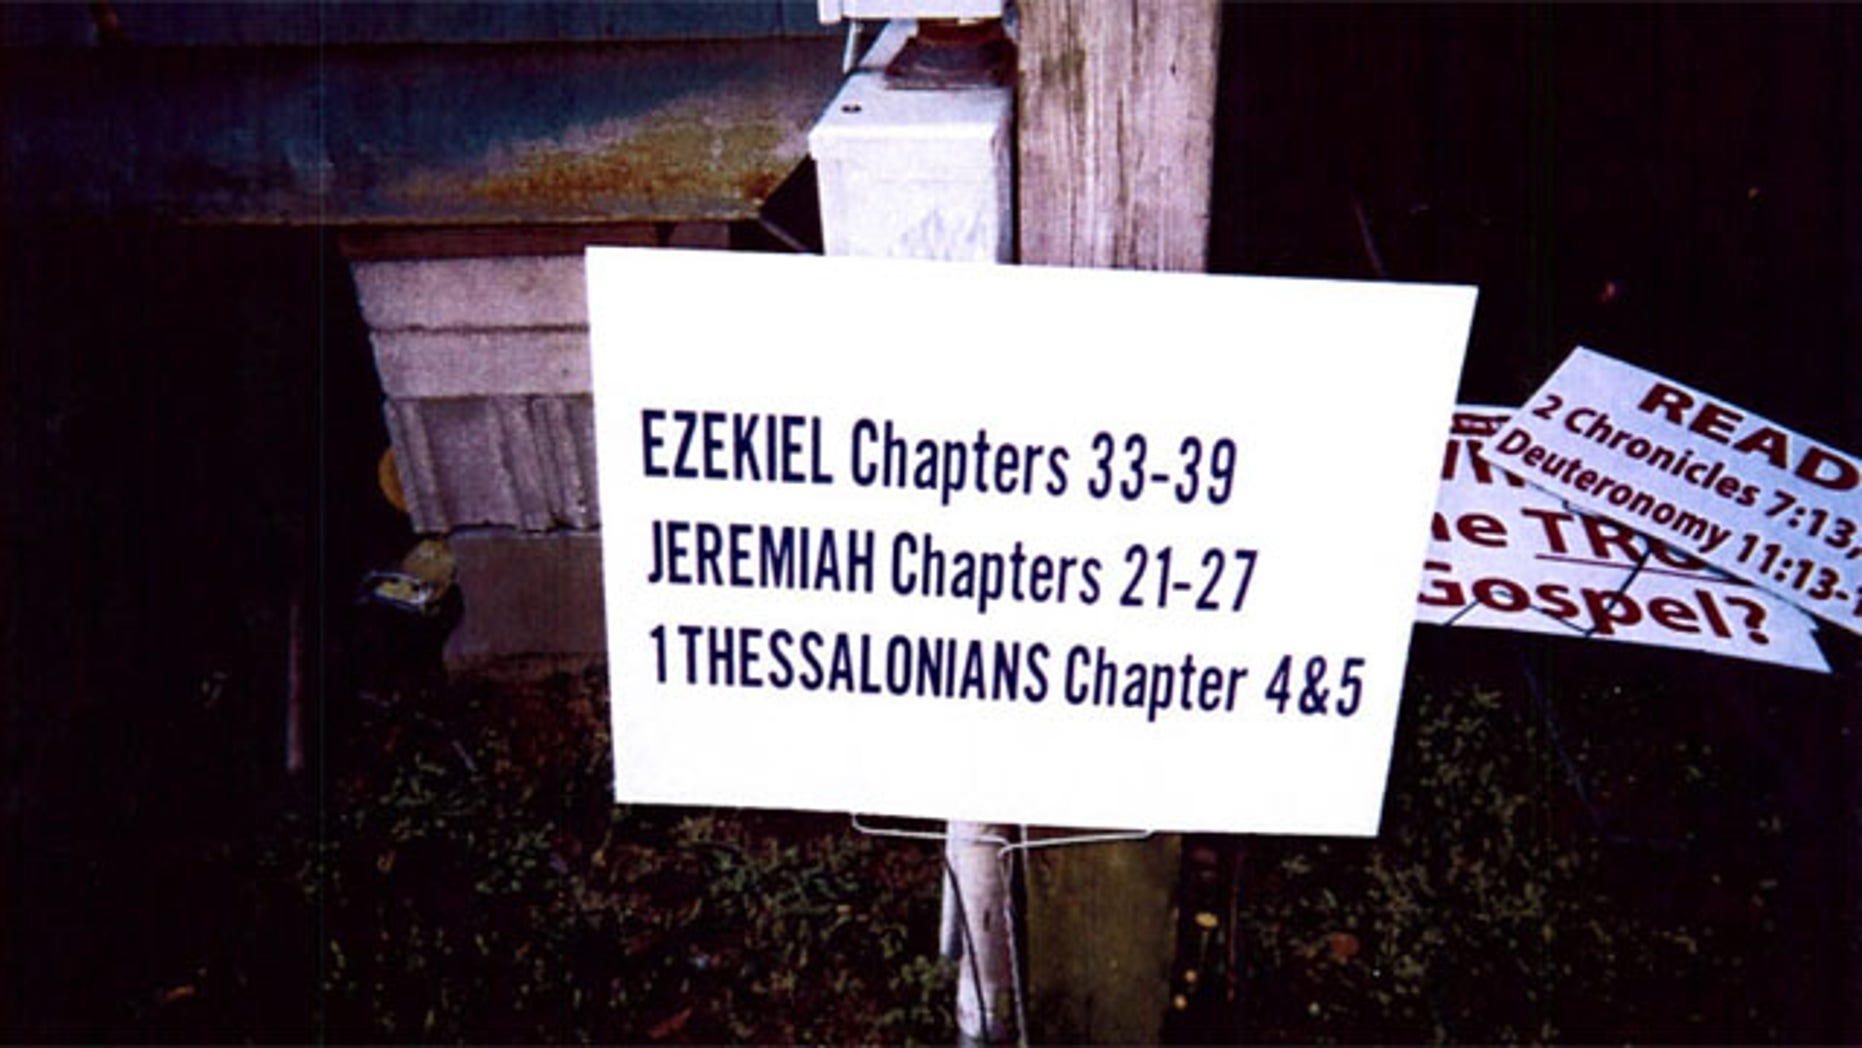 One of seven signs Oscar Moultrie was forced to remove from his yard after Berkeley County told him he needed a permit and to pay $25 per sign if he wanted to keep them up.